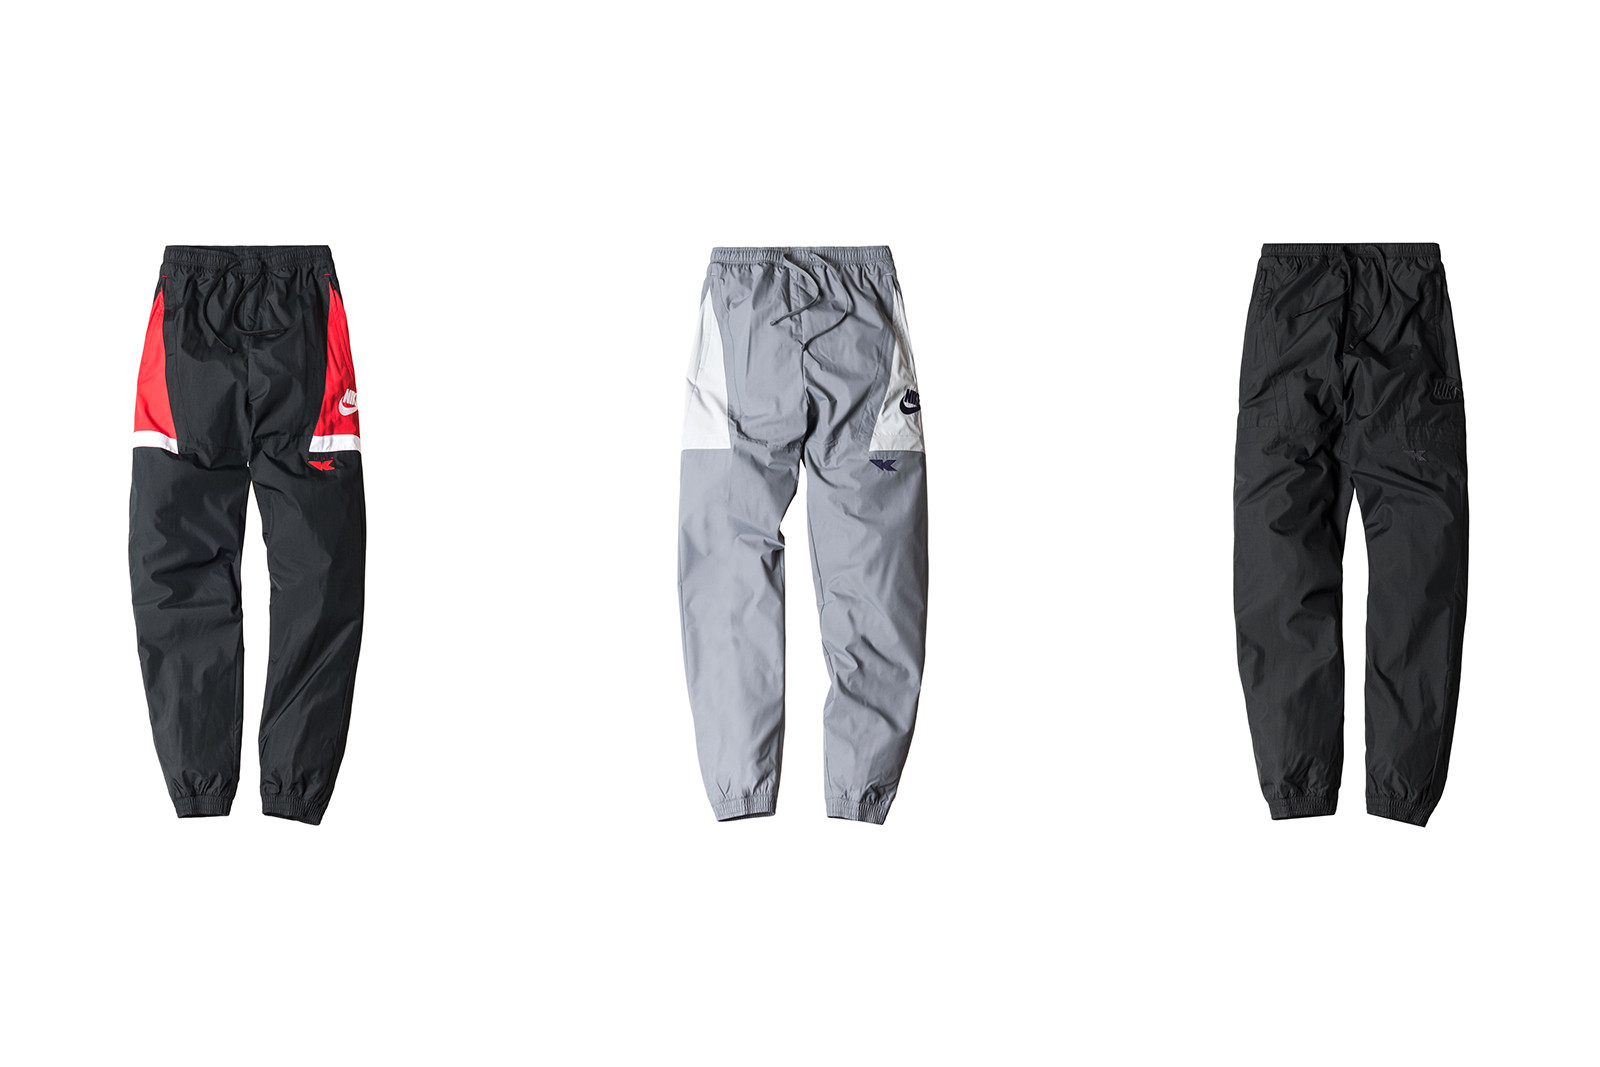 Kith Nike Take Flight Collection Nigel Sylvester Scottie Pippen